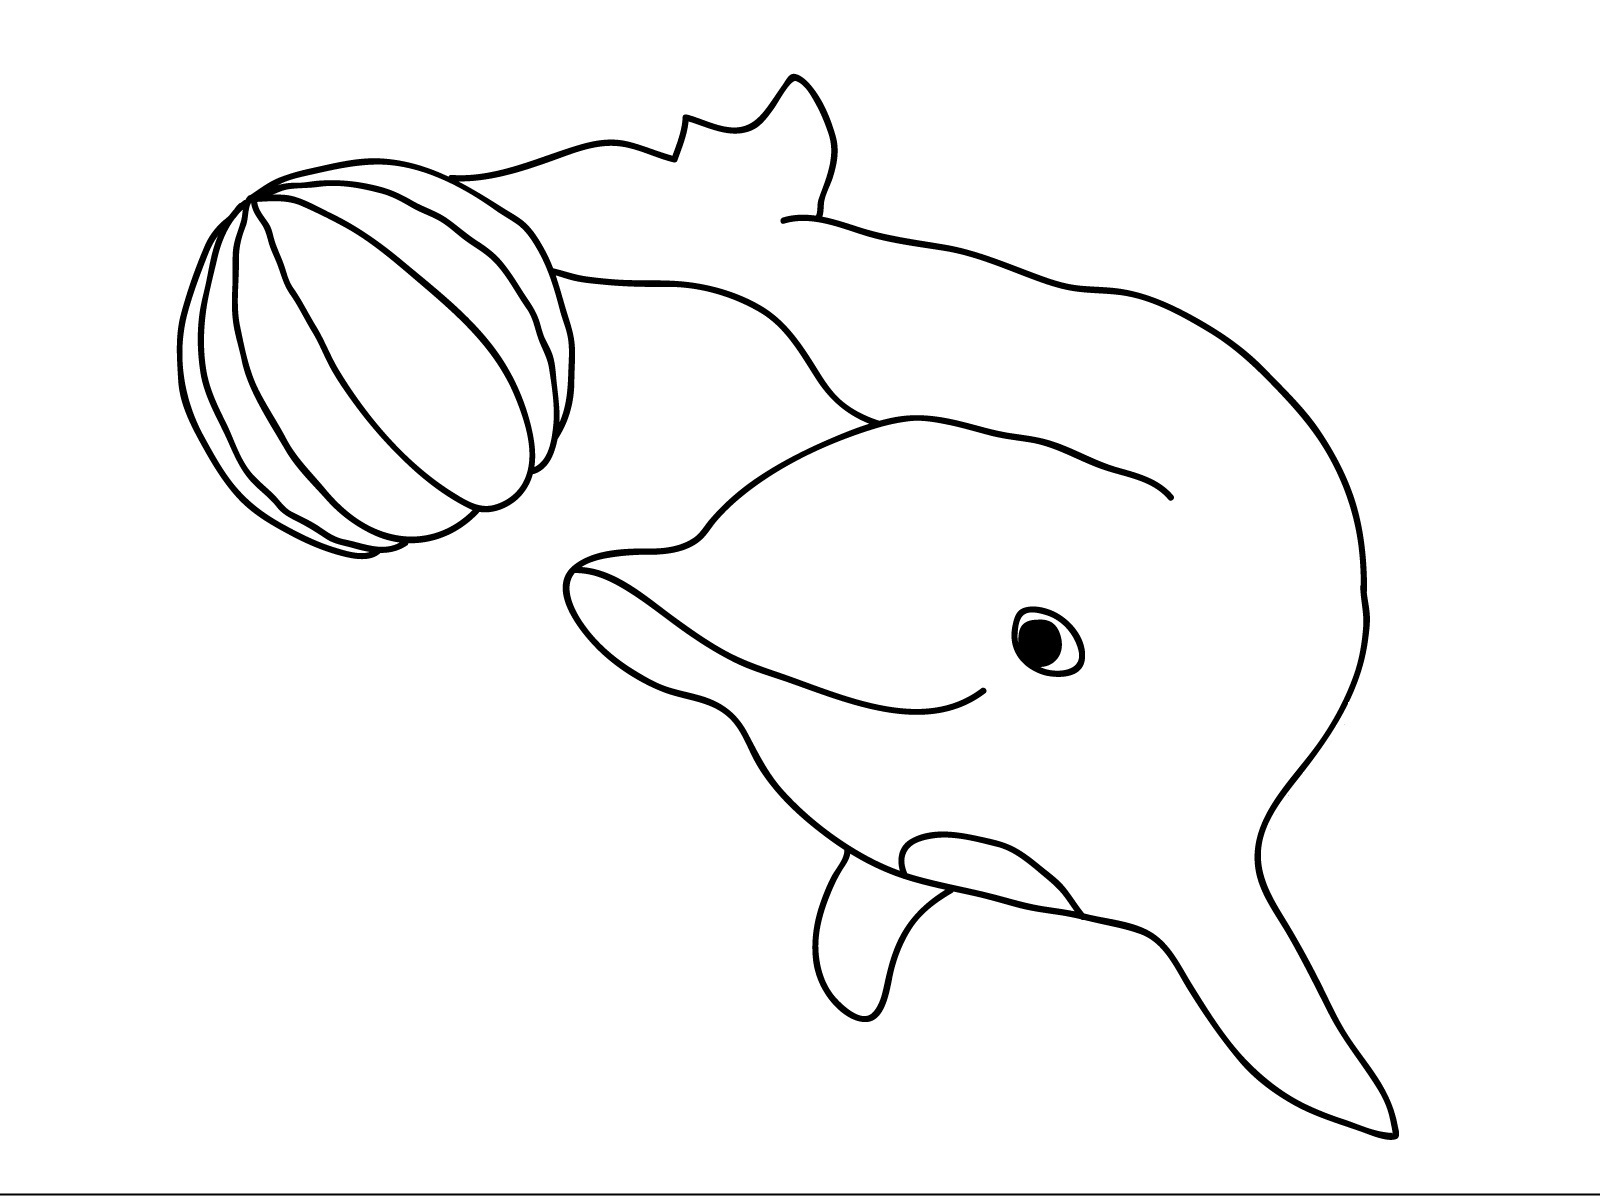 Free coloring pages dolphins - Dolphin Free Coloring Pages